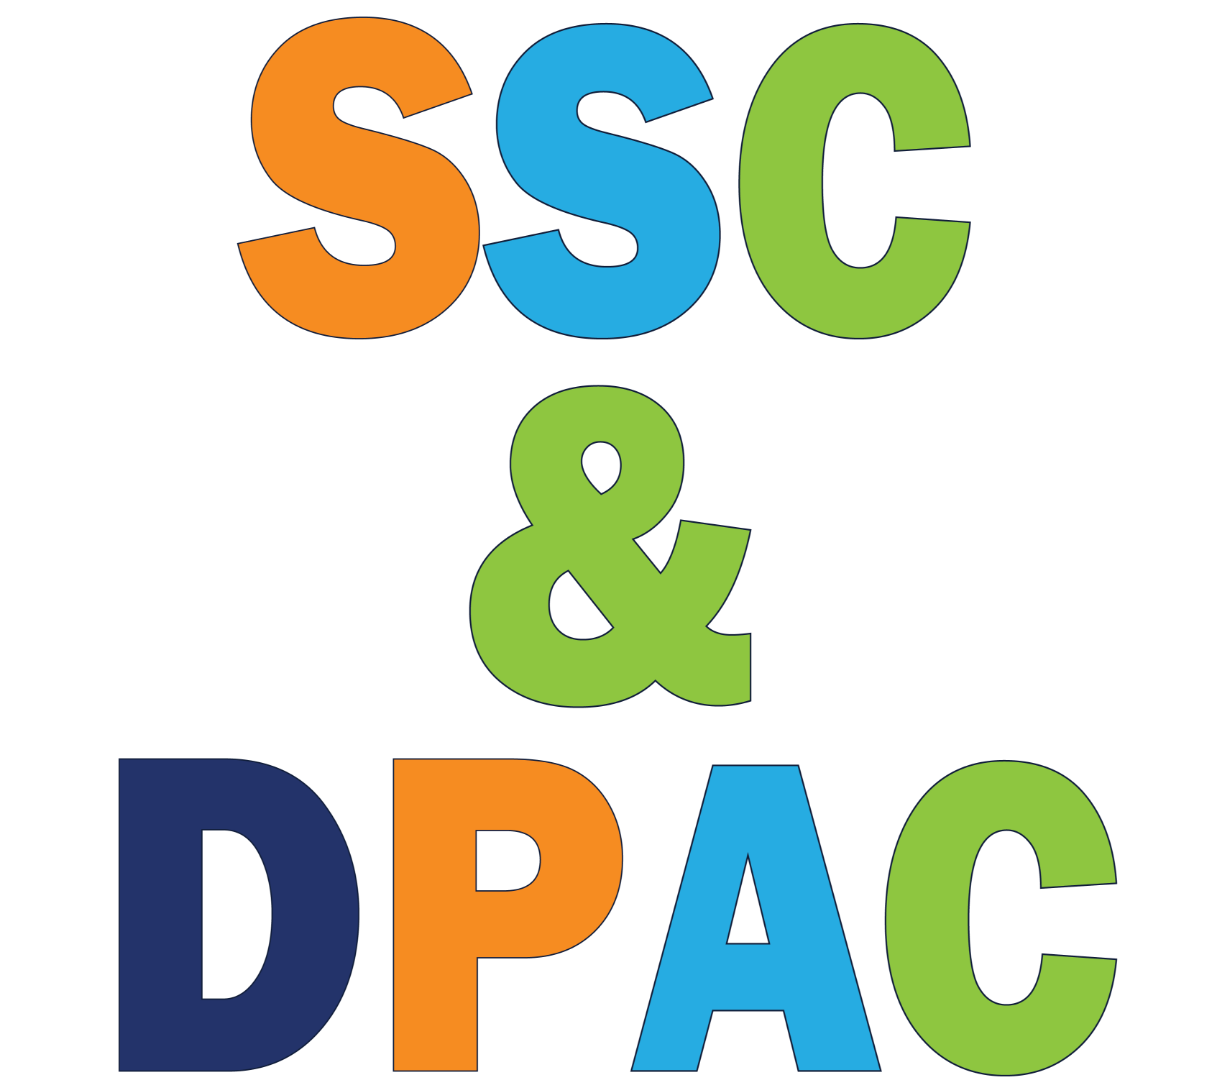 SSC and DPAC logo